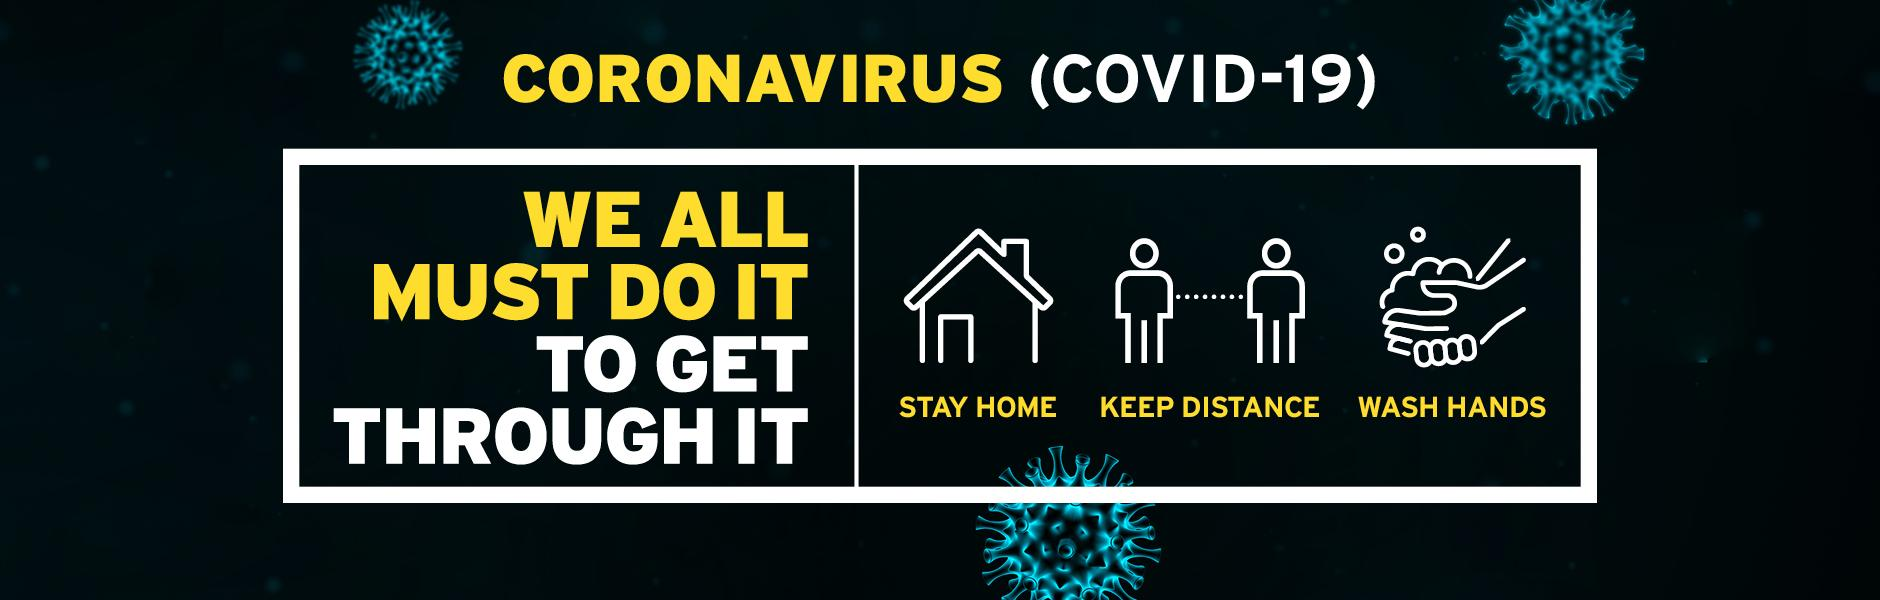 Coronavirus image - Stay home, keep distance, wash hands